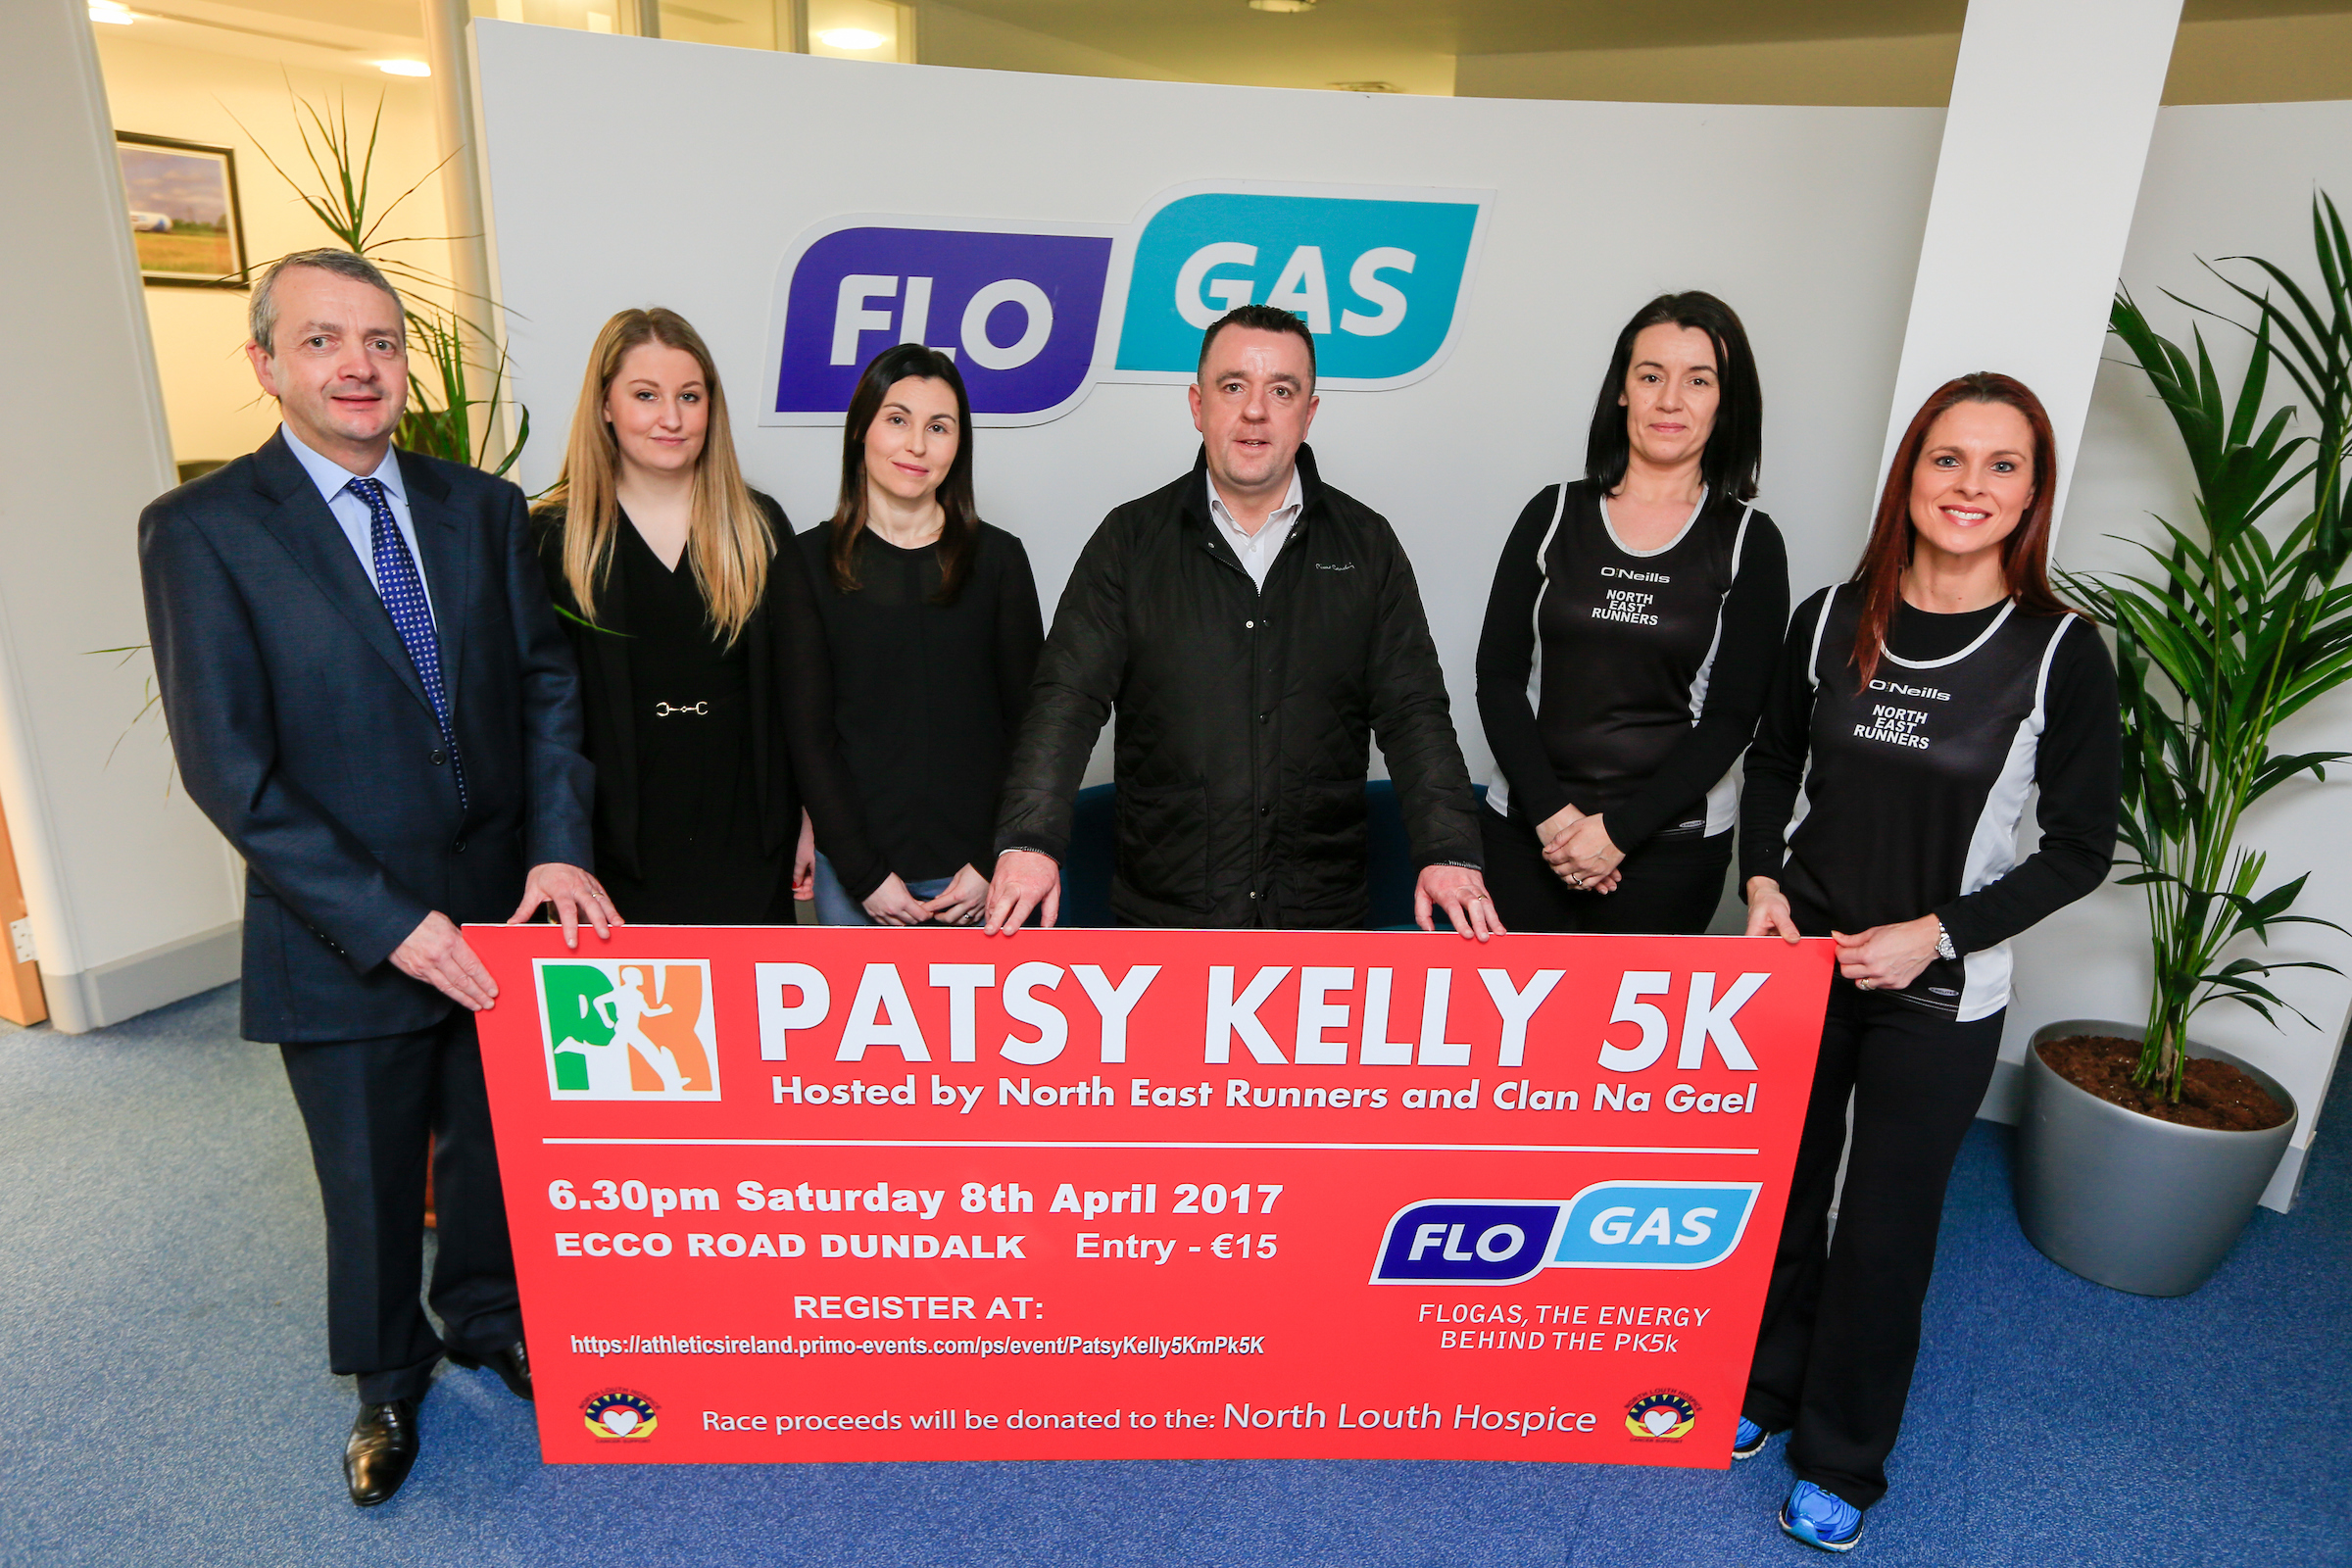 Flogas sponsors Patsy Kelly 5K in aid of North Louth Hospice